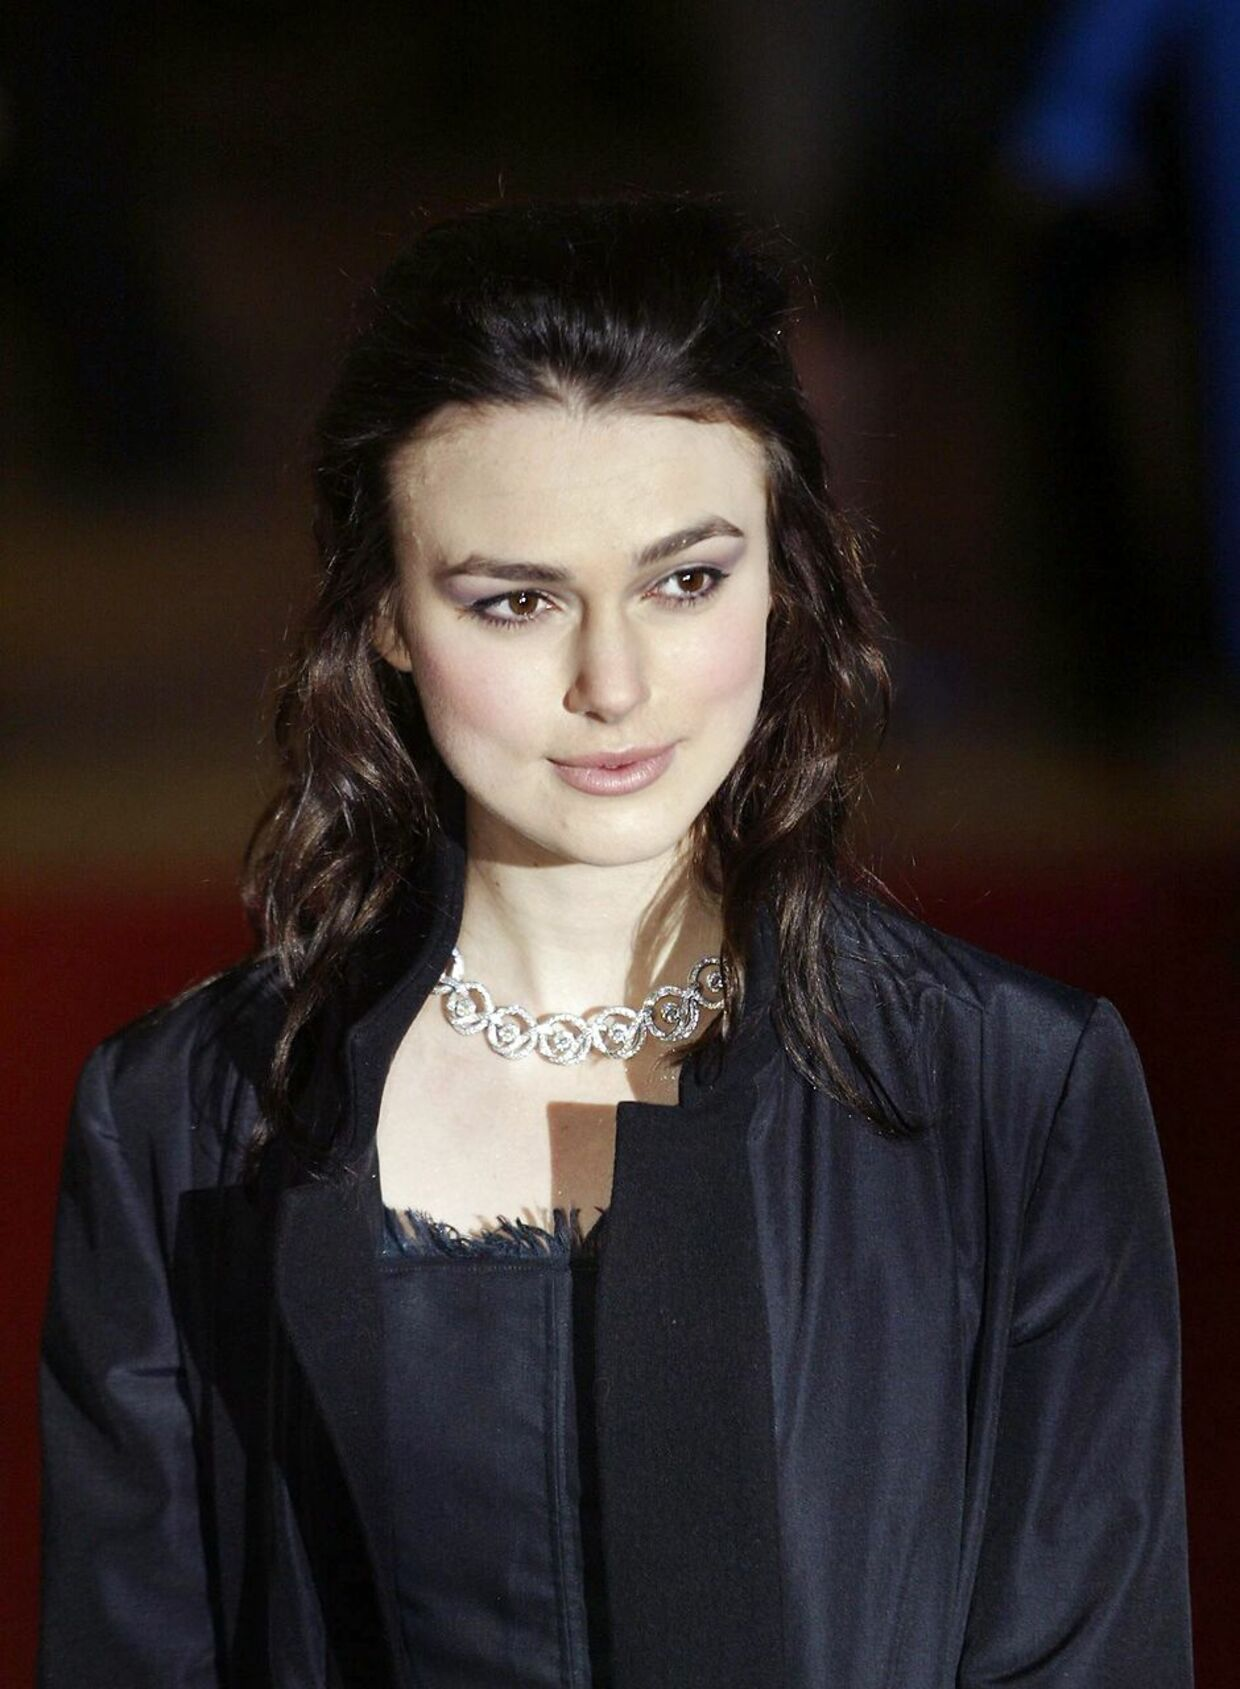 """Actress Kiera Knightley arrives for the UK premiere of the film """"Love Actually"""", at the Odeon Cinema, Leicester Square in London, 16 November 2003. """"Love Actually"""" is the latest film from director Richard Curtis, who also made """"Four Weddings and a Funeral"""" and """"Notting Hill"""". AFP PHOTO/ALESSANDRO ABBONIZIO ALESSANDRO ABBONIZIO / AFP"""